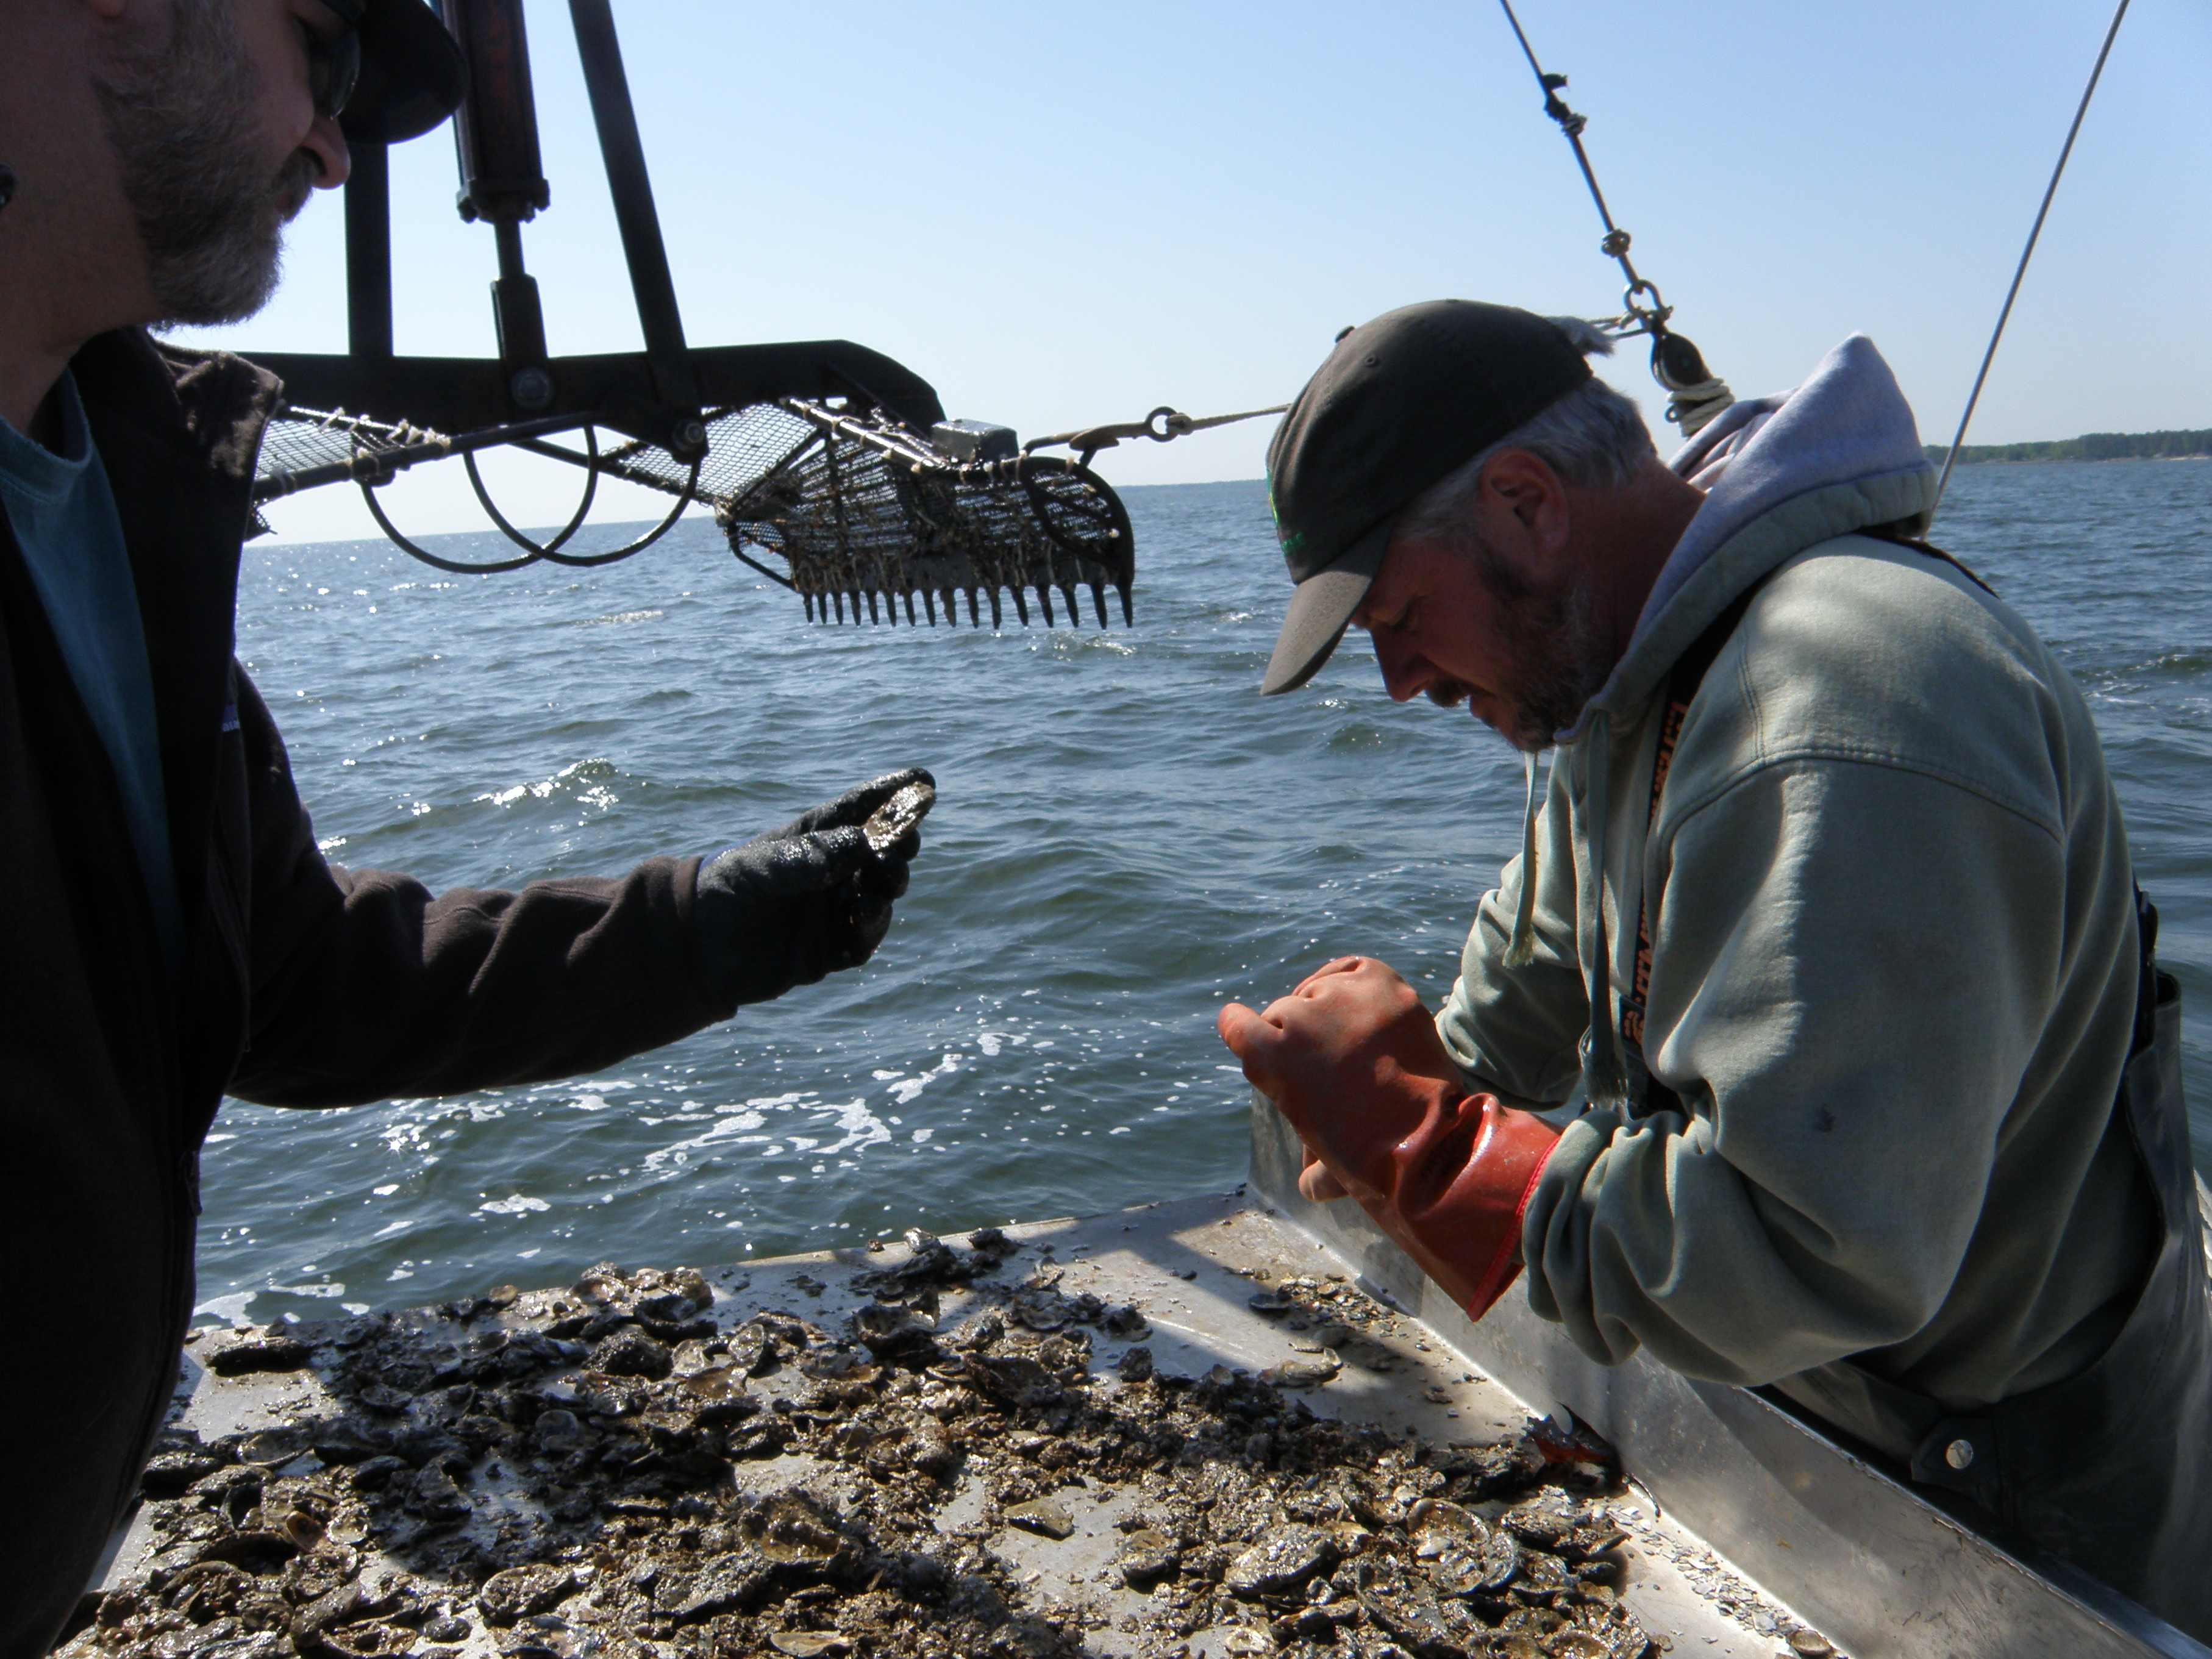 A scientist and a waterman examine oysters hauled up from the Potomac River, which flows into the Chesapeake Bay.